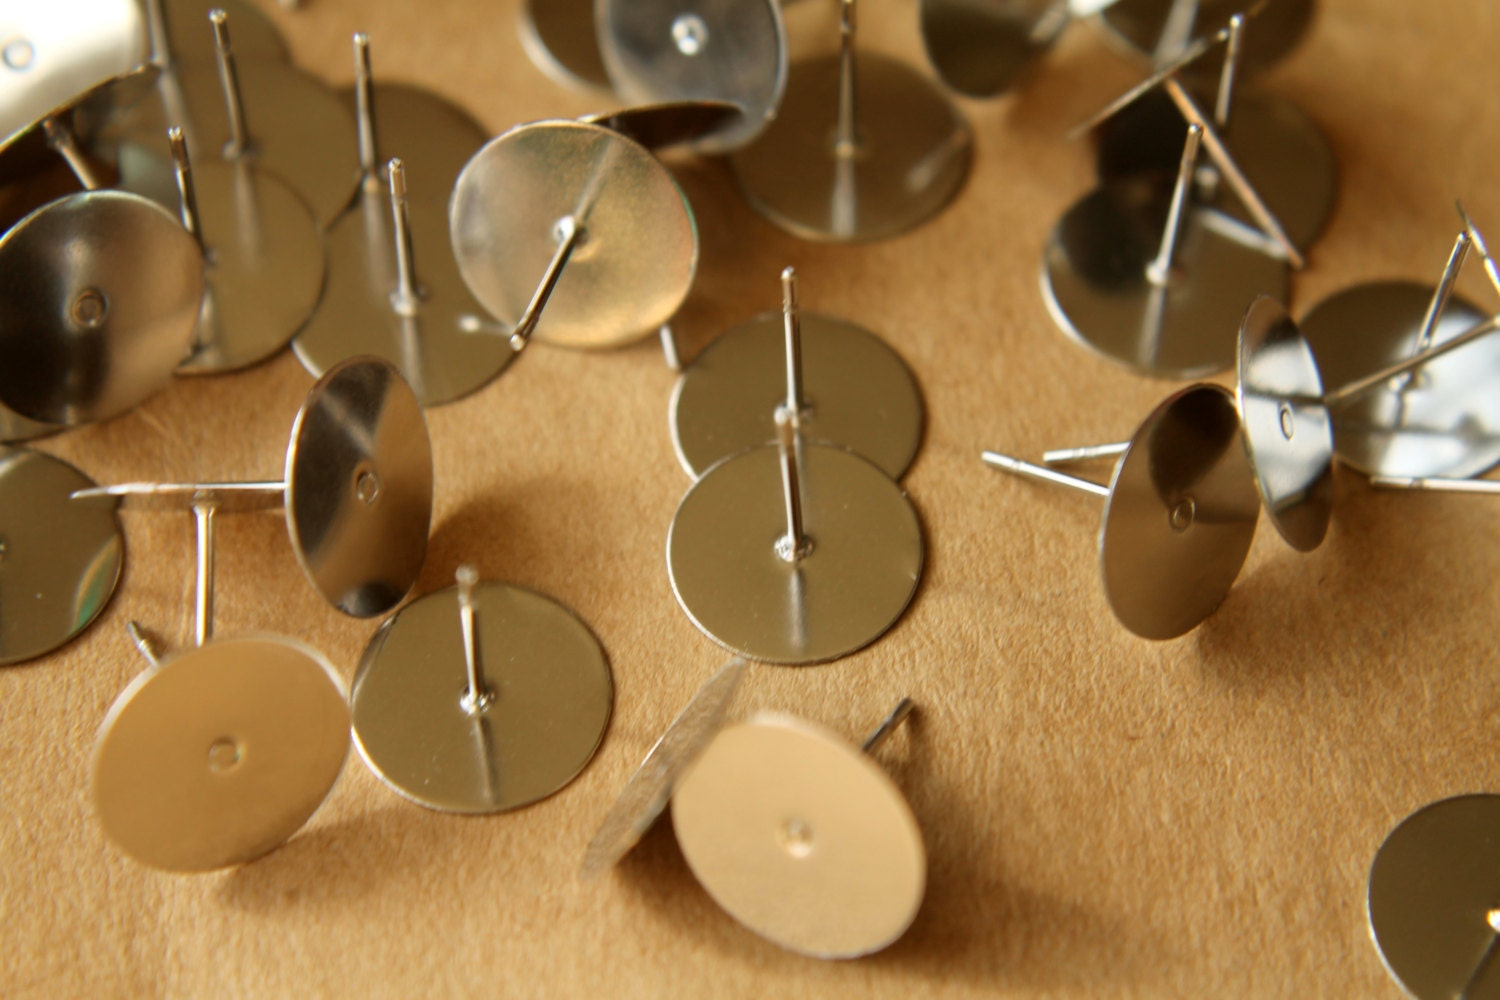 100 Pc Stainless Steel Earring Posts 10mm Pad Fi 140